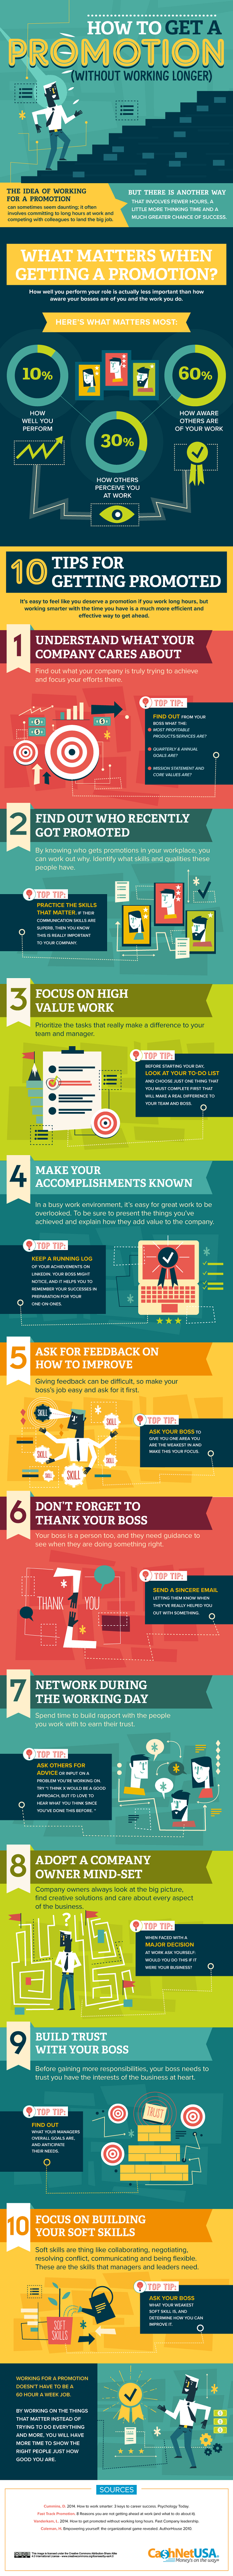 infographic how to get a promotion out working longer click to view enlarged version